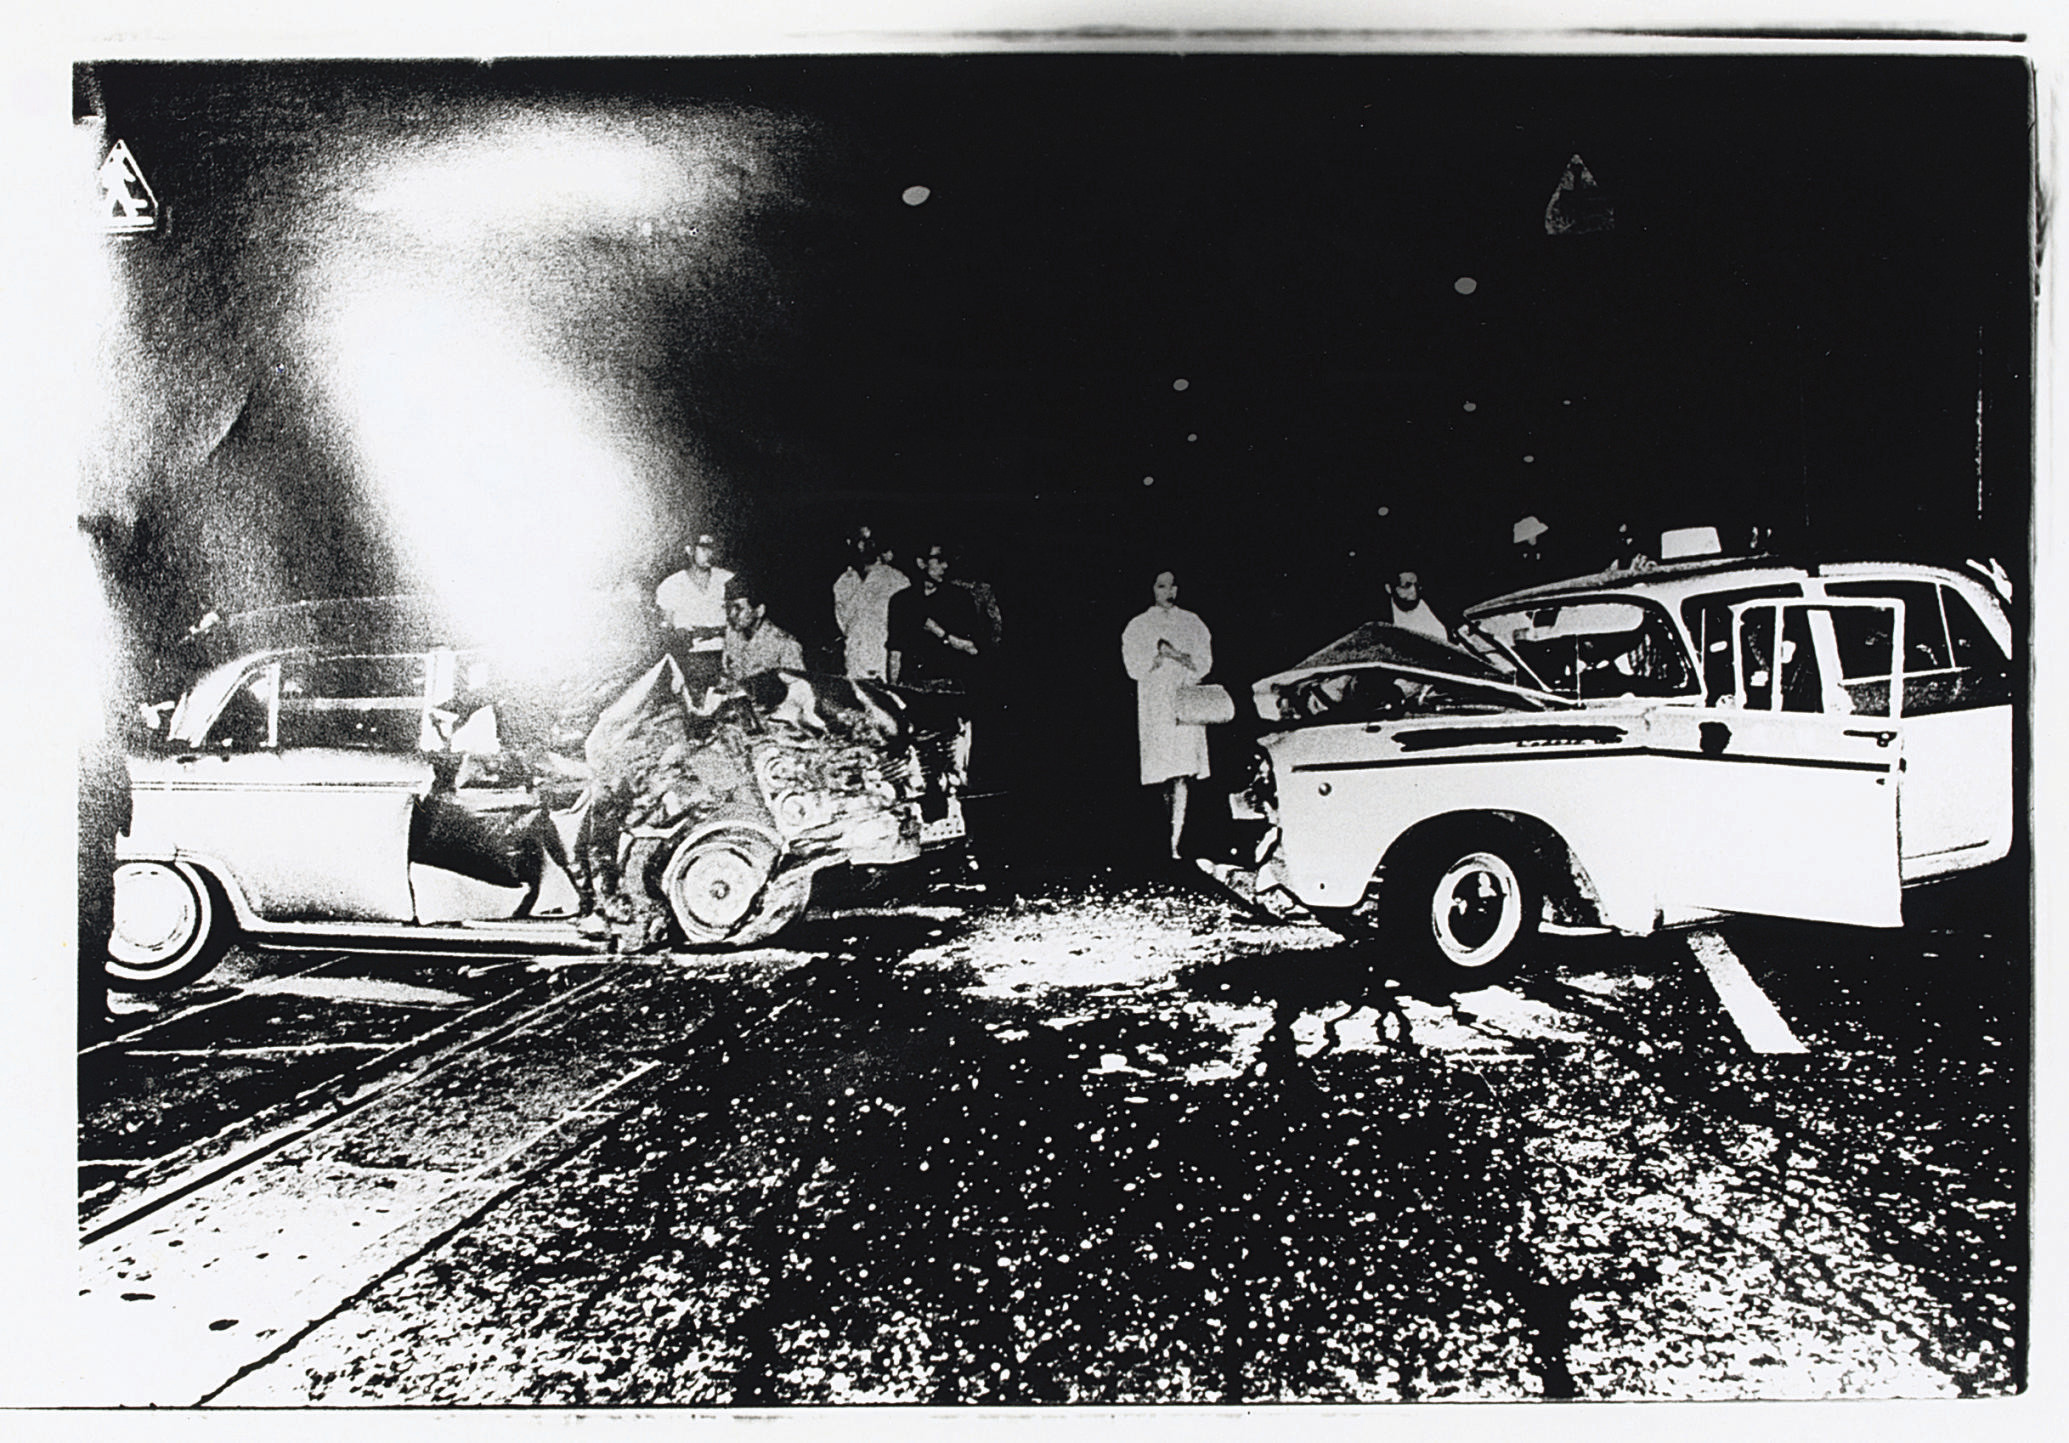 Smash-up from 'Accident', 1969